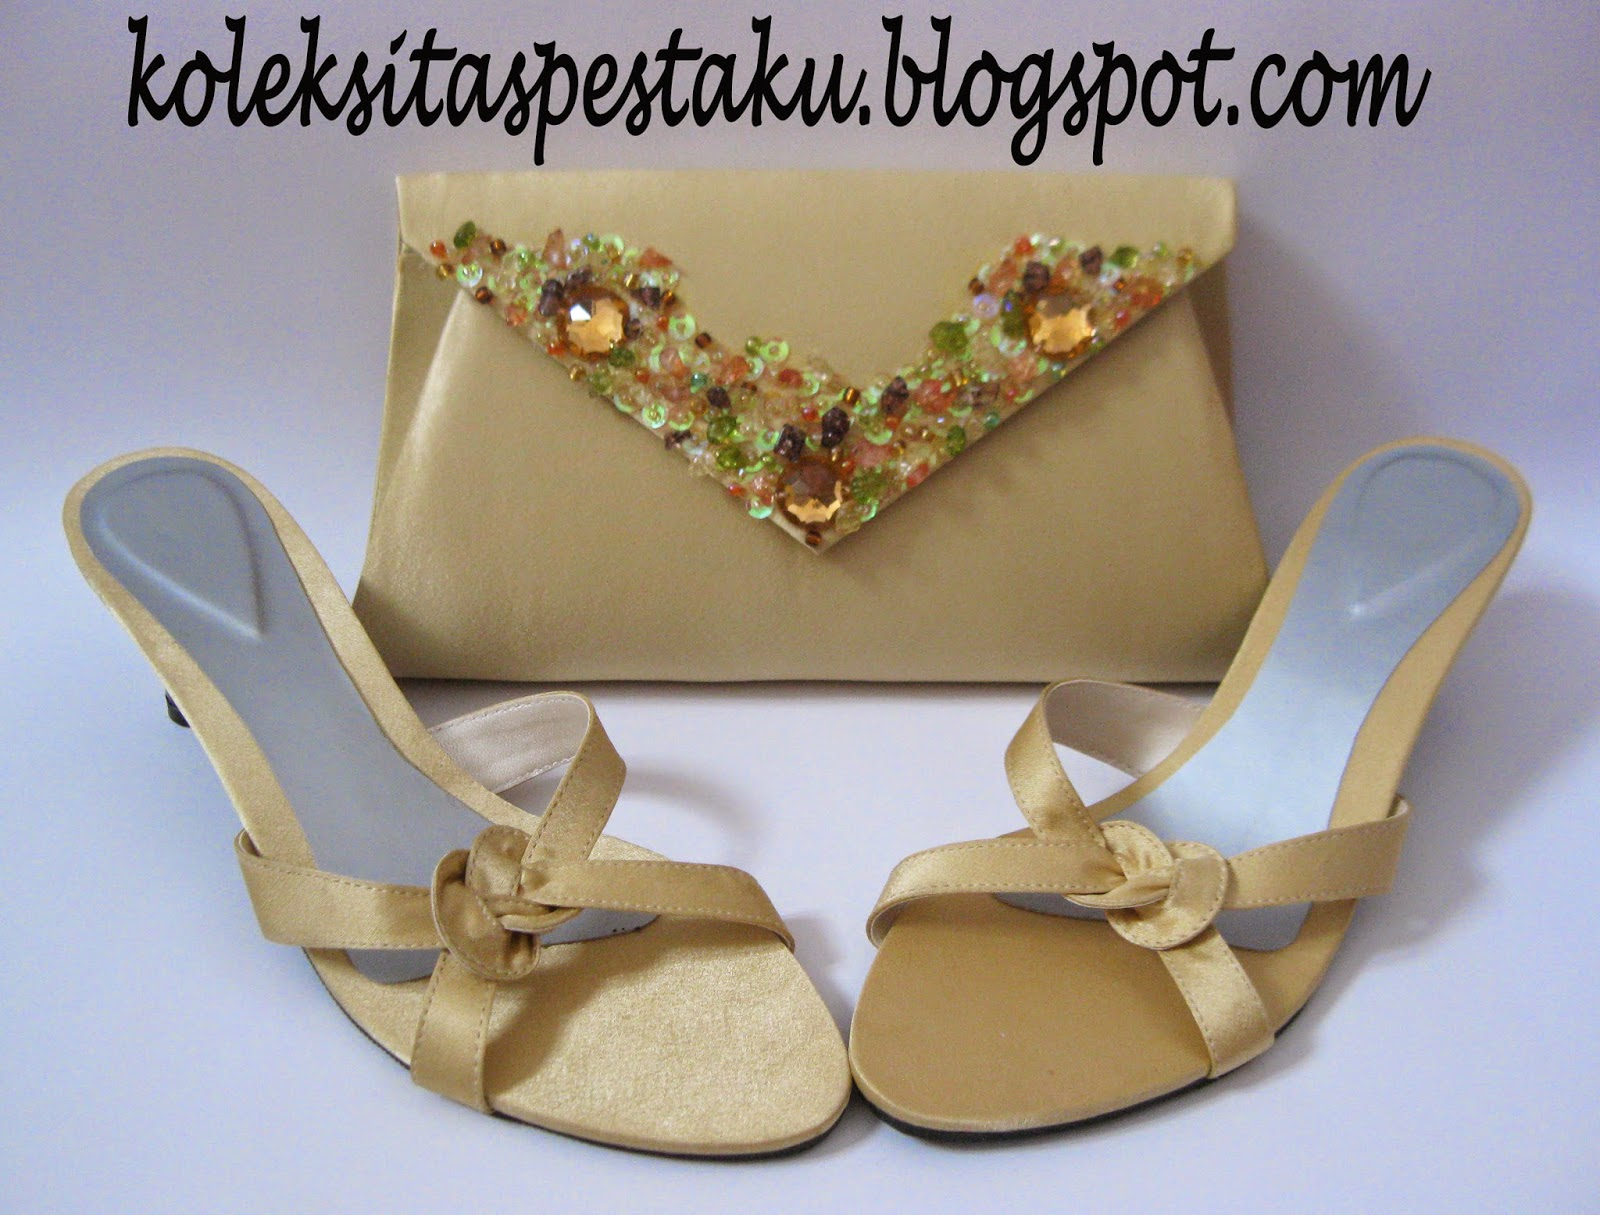 Slop Pesta Clutch Bag AMplop Gold Mewah